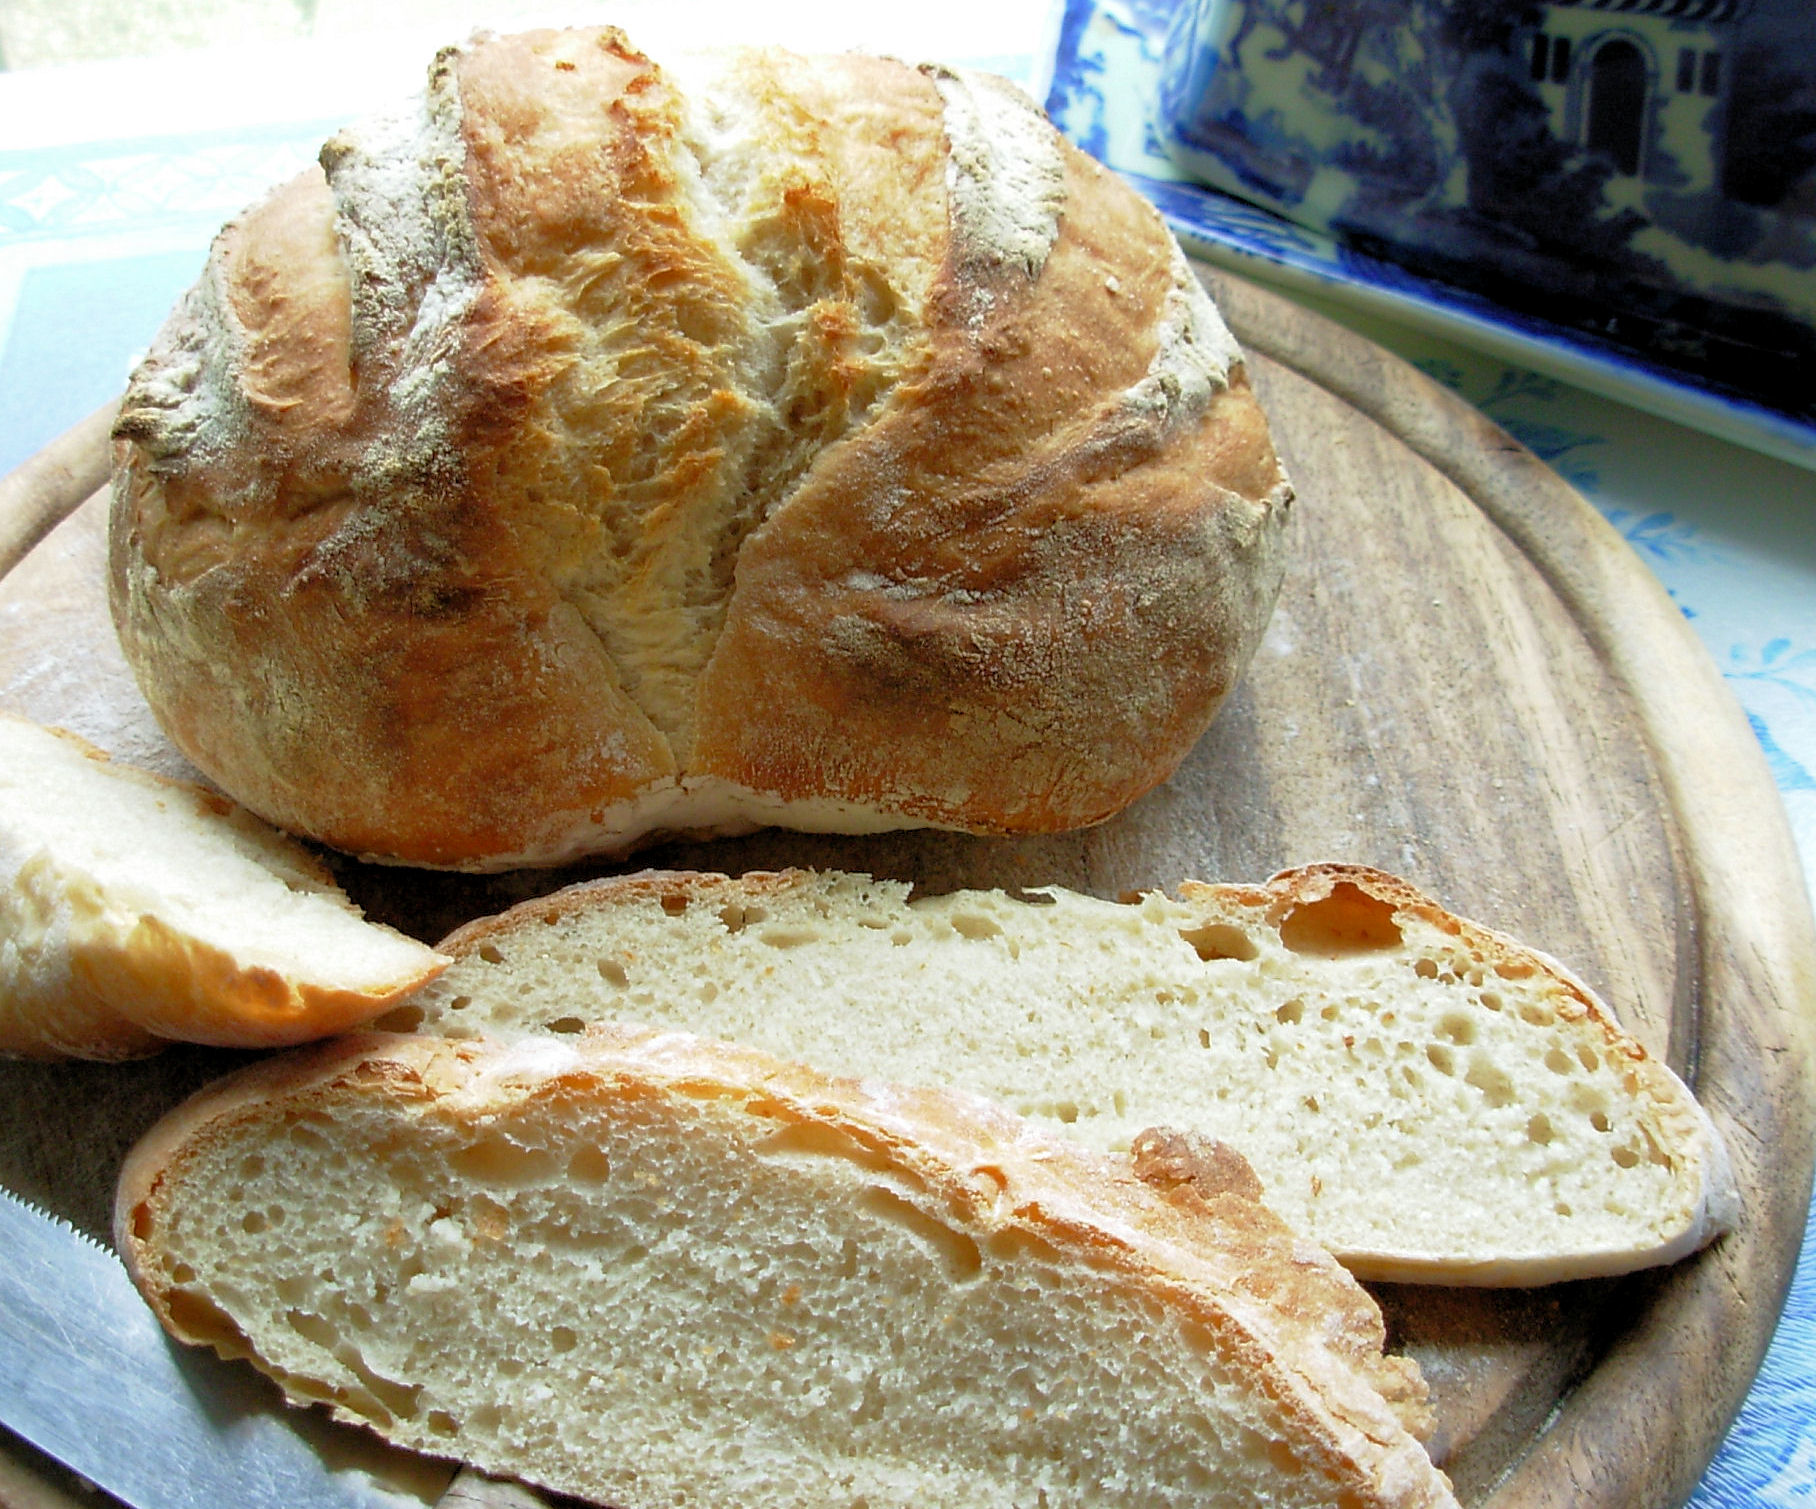 Our Daily Bread in a Crock – Weekly Make and Bake Rustic Bread